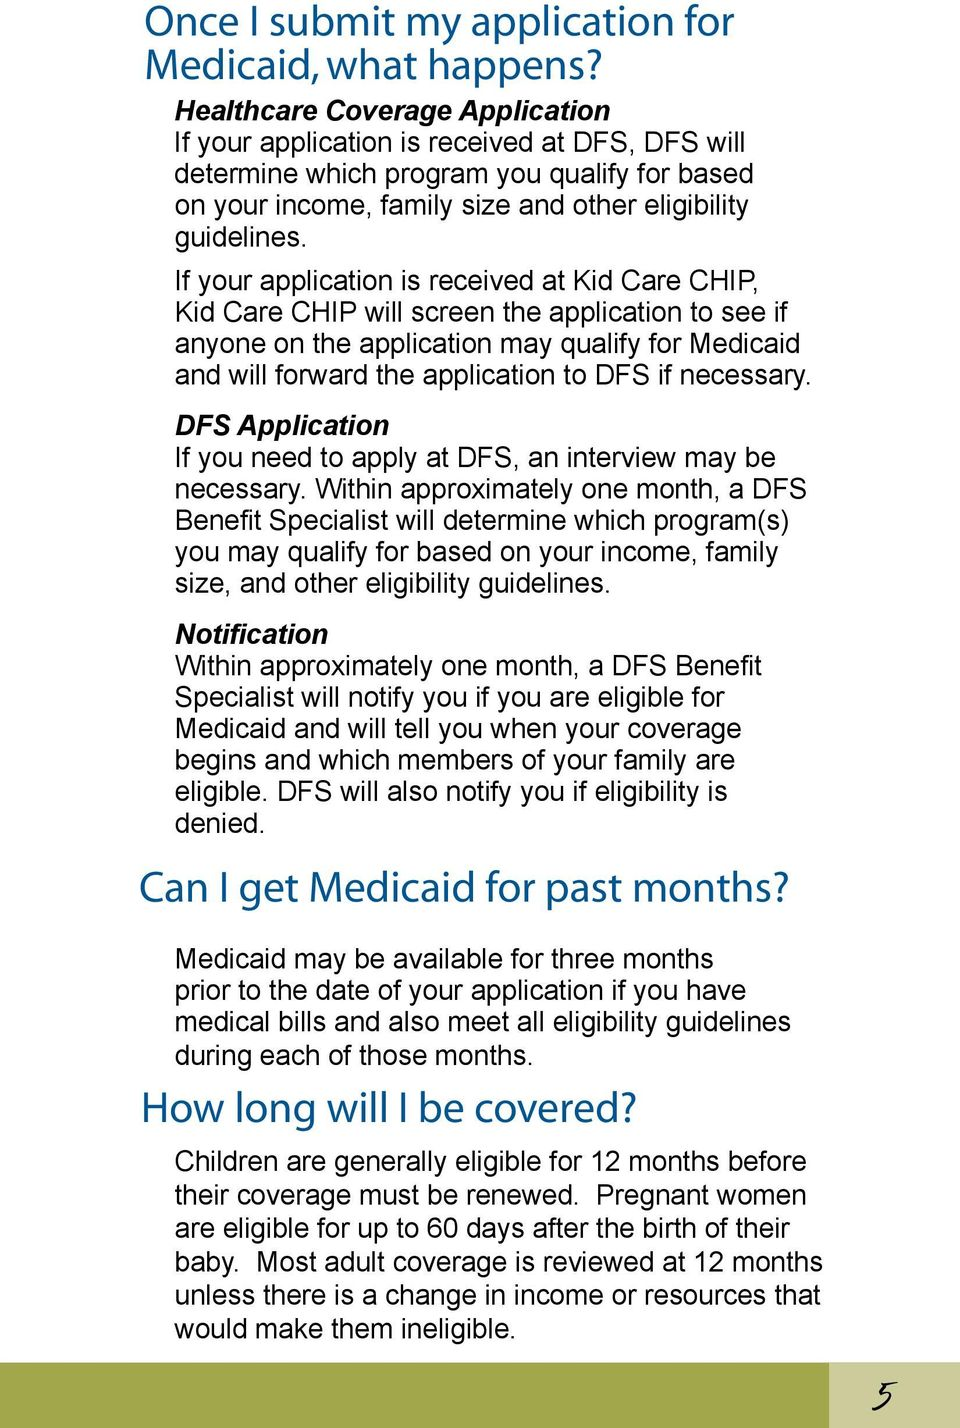 If your application is received at Kid Care CHIP, Kid Care CHIP will screen the application to see if anyone on the application may qualify for Medicaid and will forward the application to DFS if